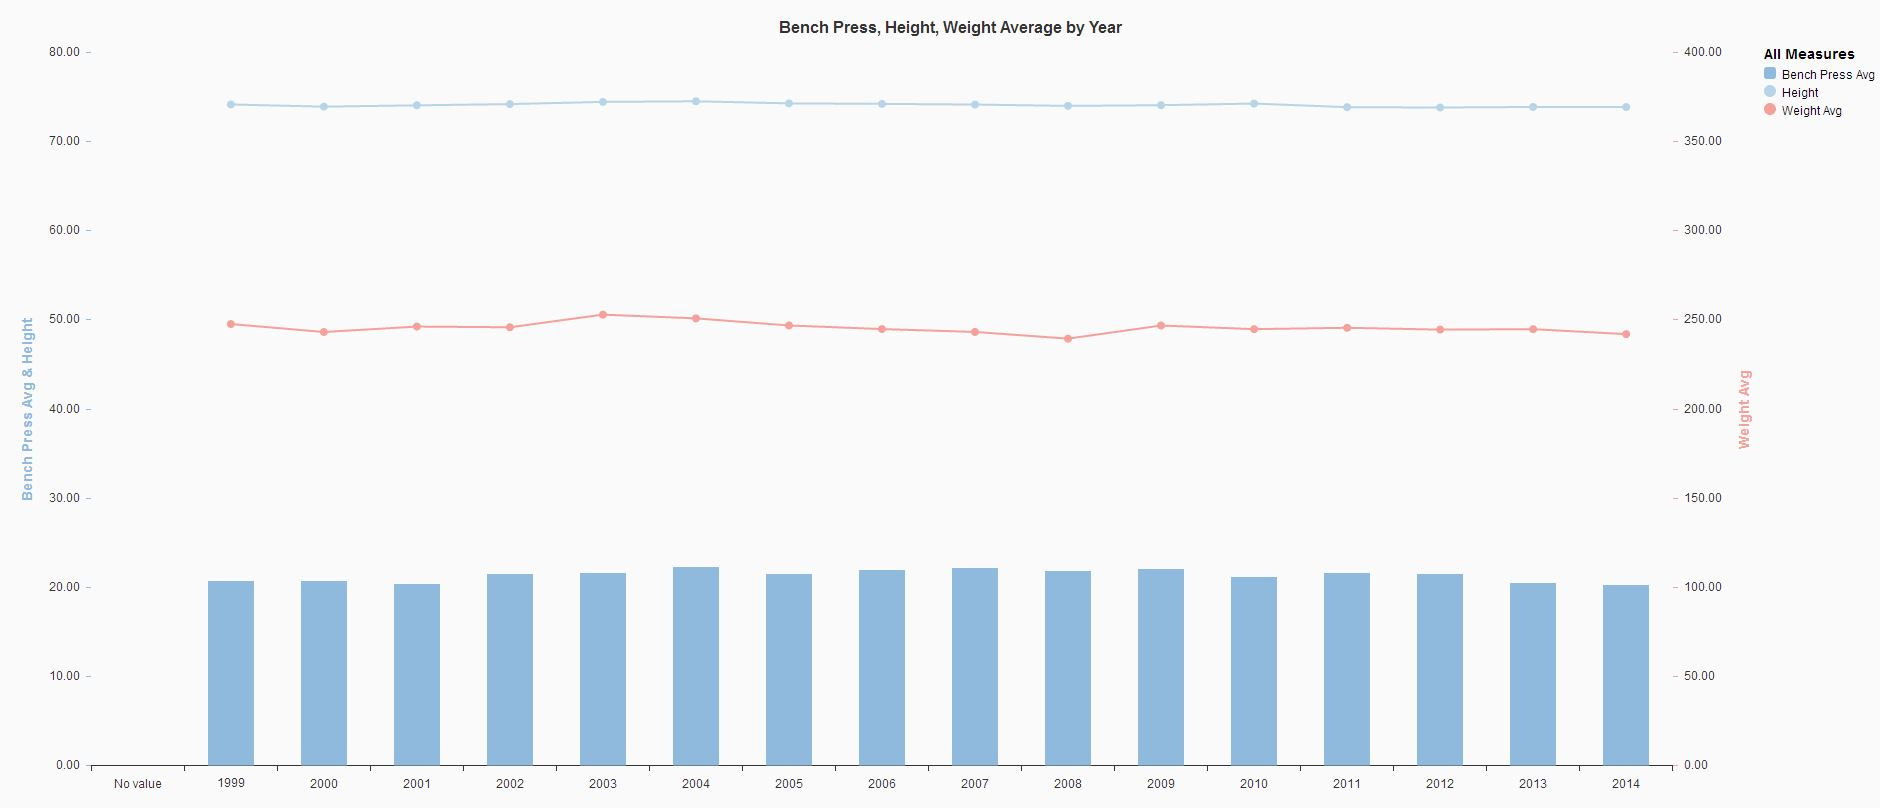 Bench Press Height Weight Average by Year.JPG